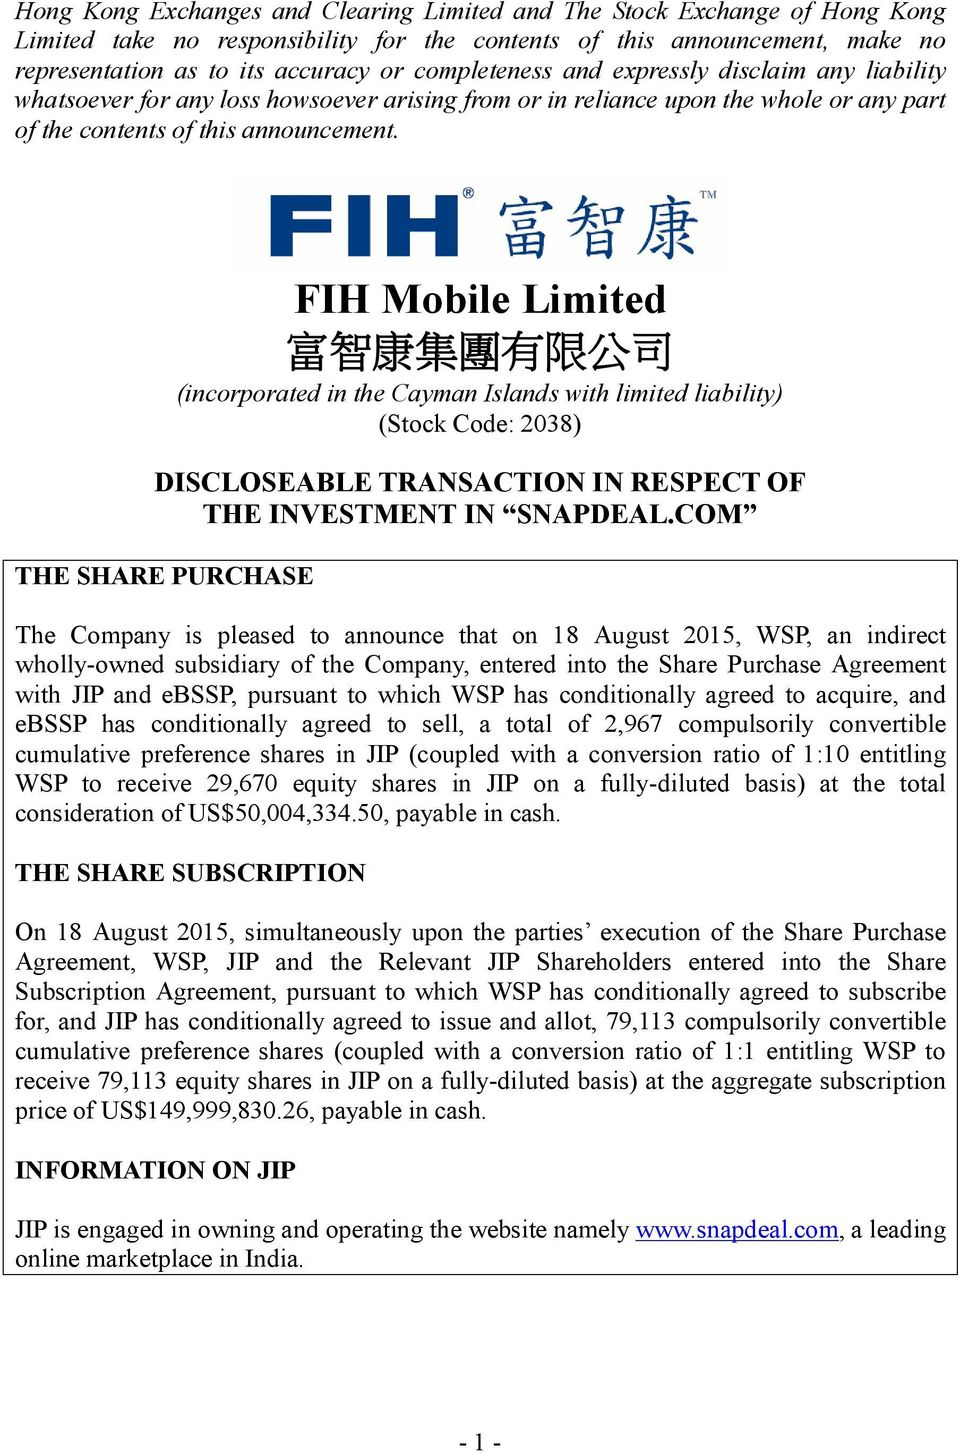 FIH Mobile Limited 富 智 康 集 團 有 限 公 司 (incorporated in the Cayman Islands with limited liability) (Stock Code: 2038) DISCLOSEABLE TRANSACTION IN RESPECT OF THE INVESTMENT IN SNAPDEAL.